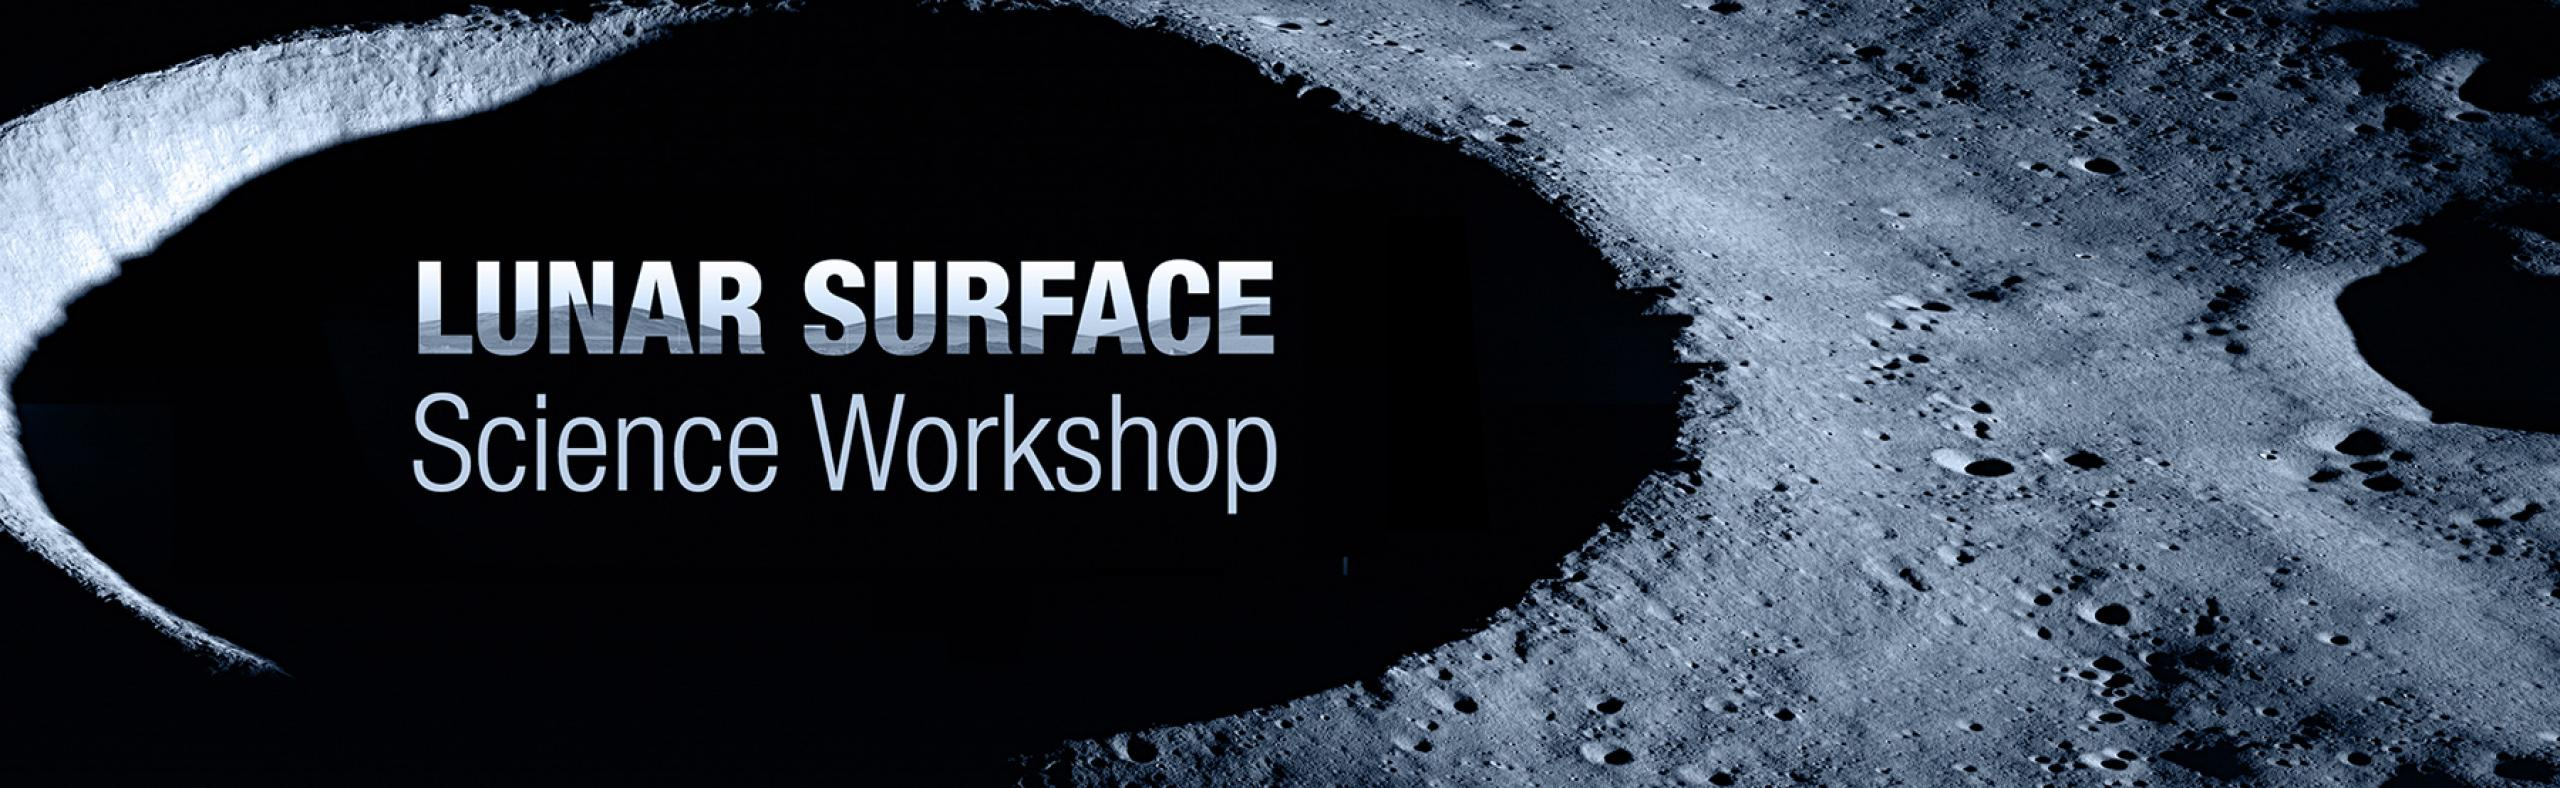 Banner entitled Lunar Surface Science Workshop with the image of the moon surface